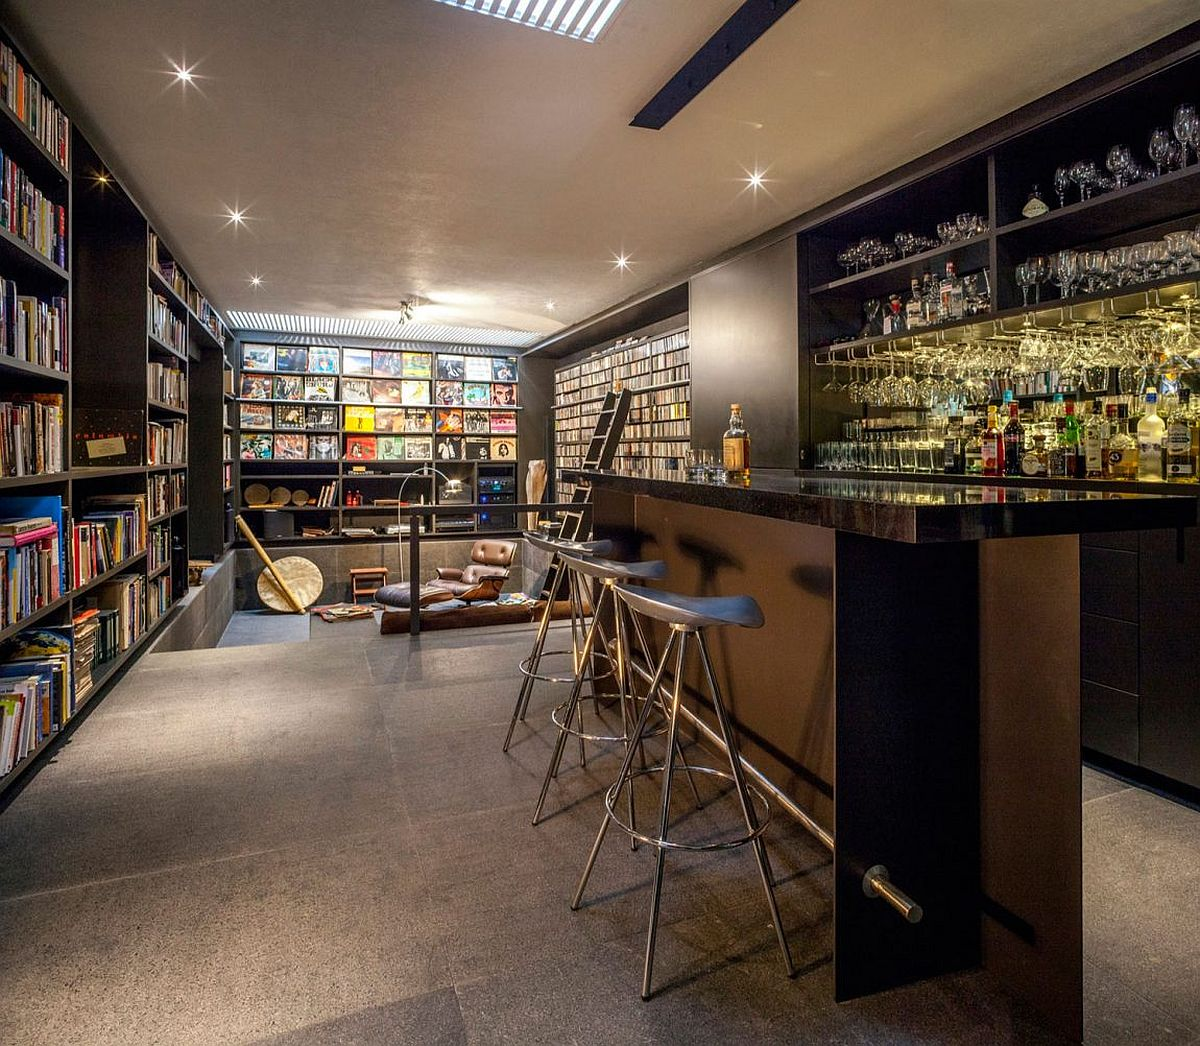 Art work wall of books and a home bar shape an intimate interior